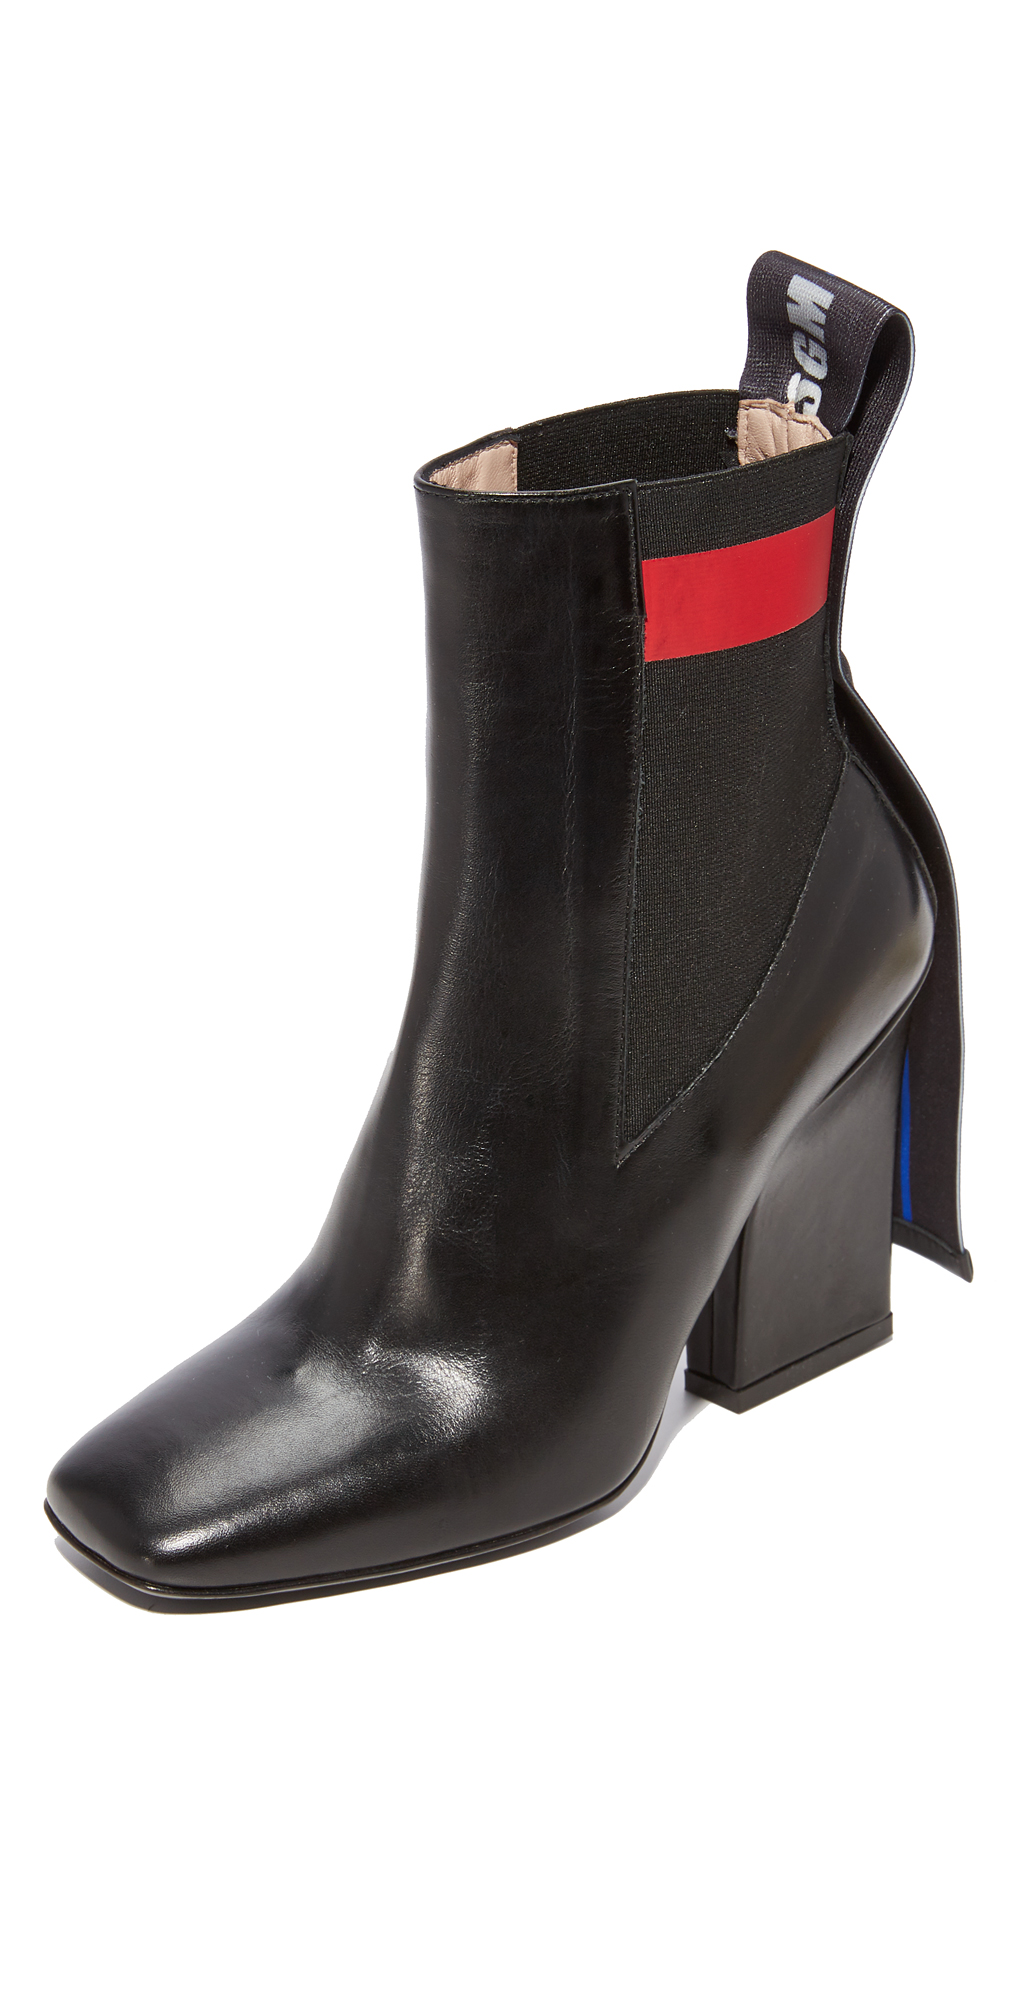 Striped Band Chelsea Boots MSGM